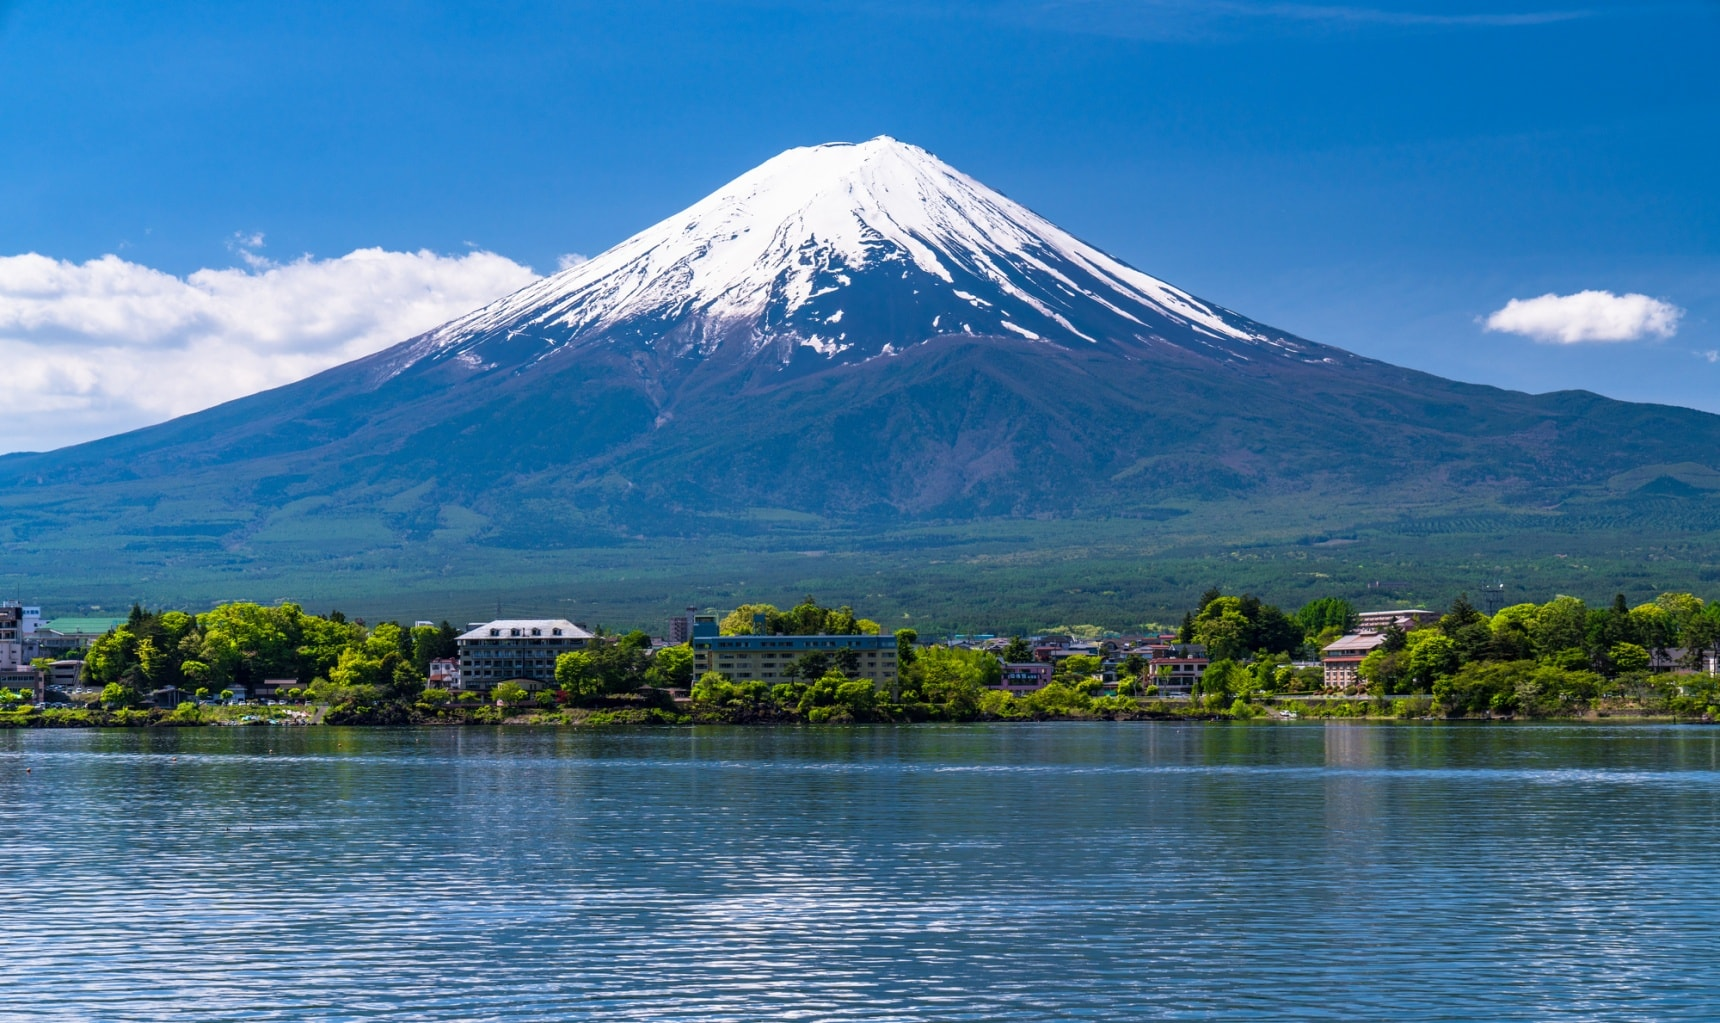 All About Climbing Mount Fuji